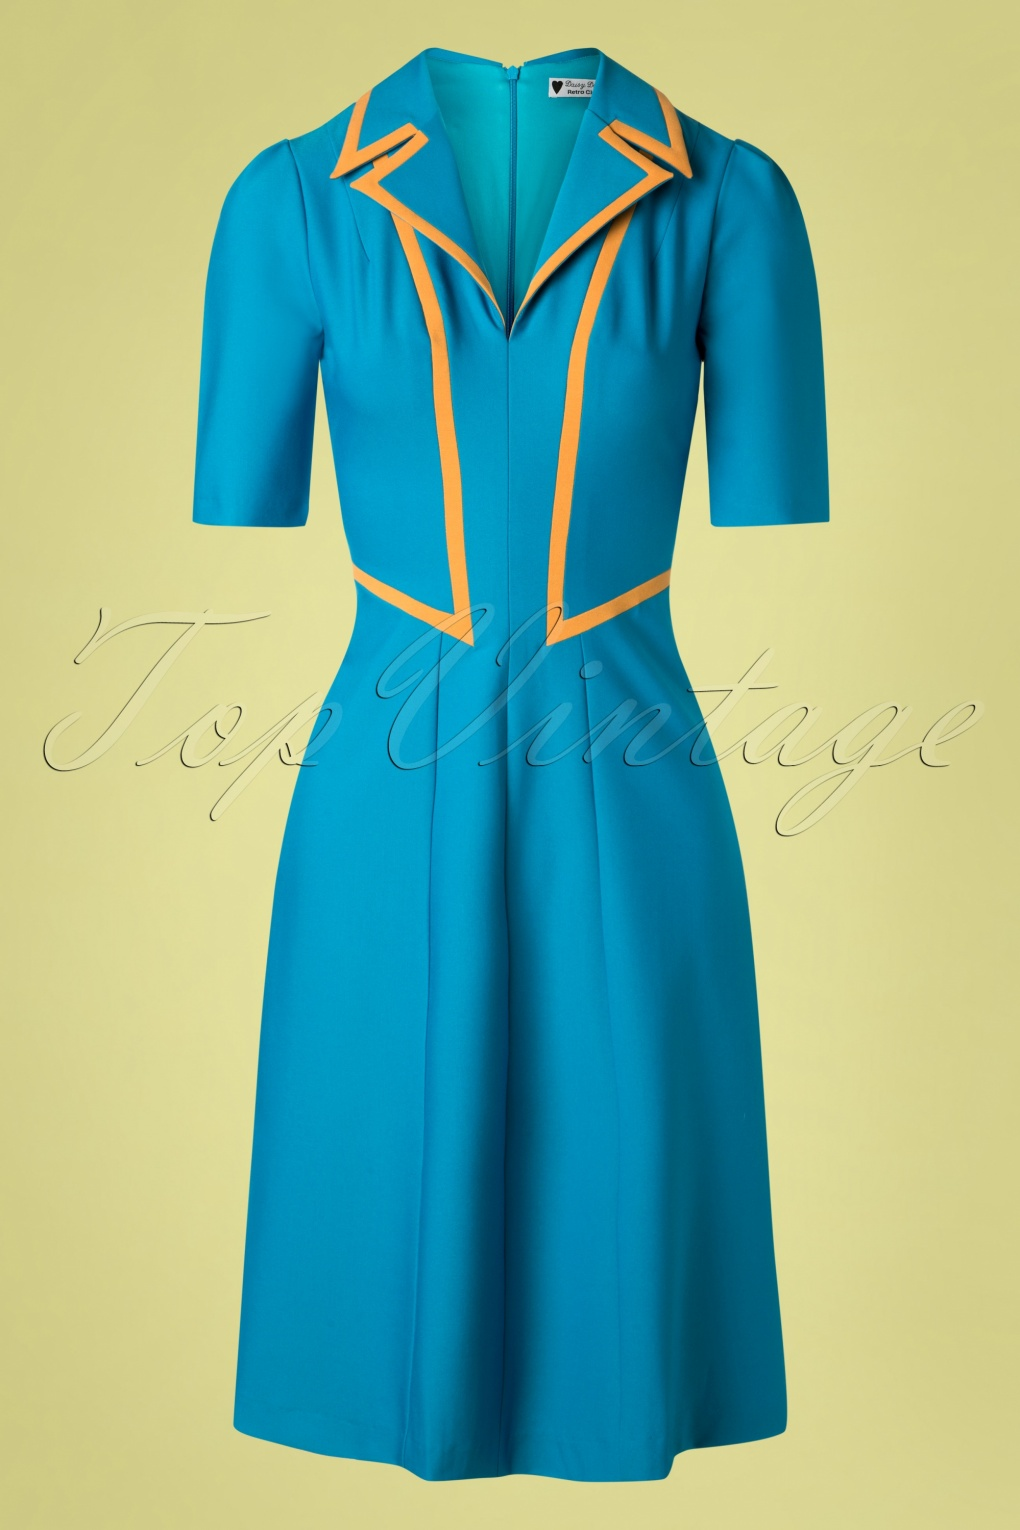 Vintage Tea Dresses, Floral Tea Dresses, Tea Length Dresses 40s Agnefrid Dress in Petrol Blue �125.15 AT vintagedancer.com